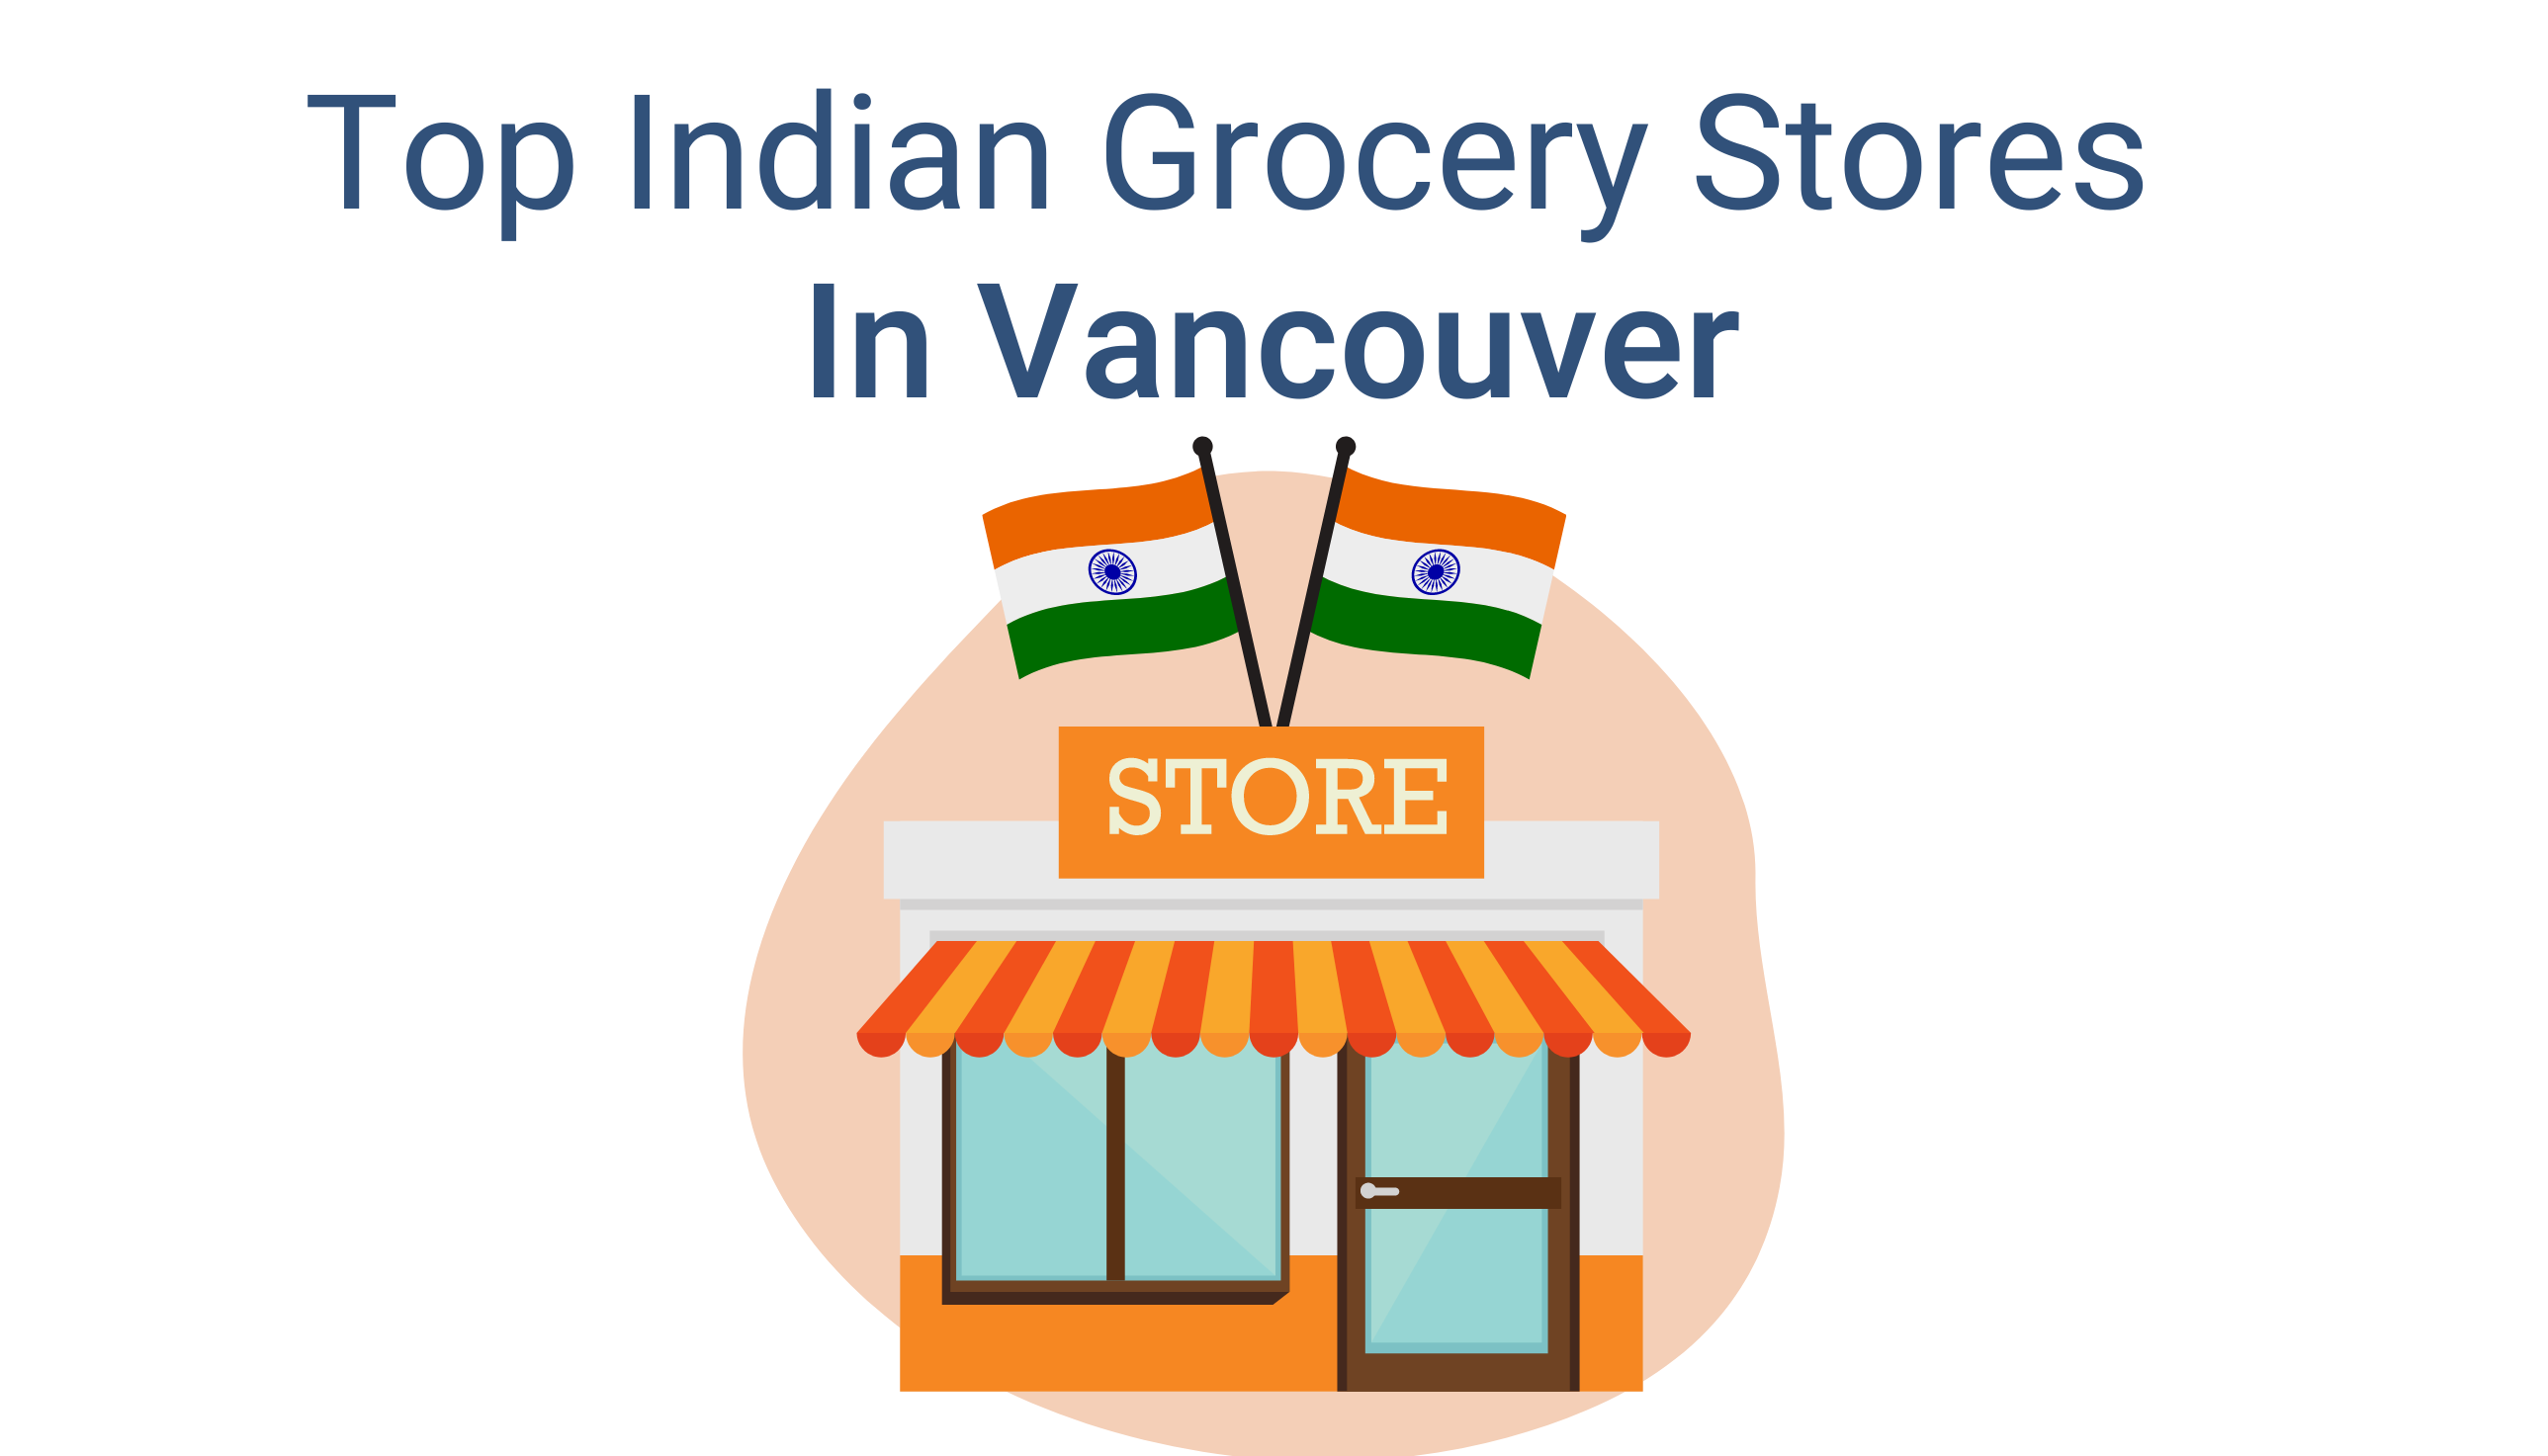 Top 10 grocery stores in Vancouver